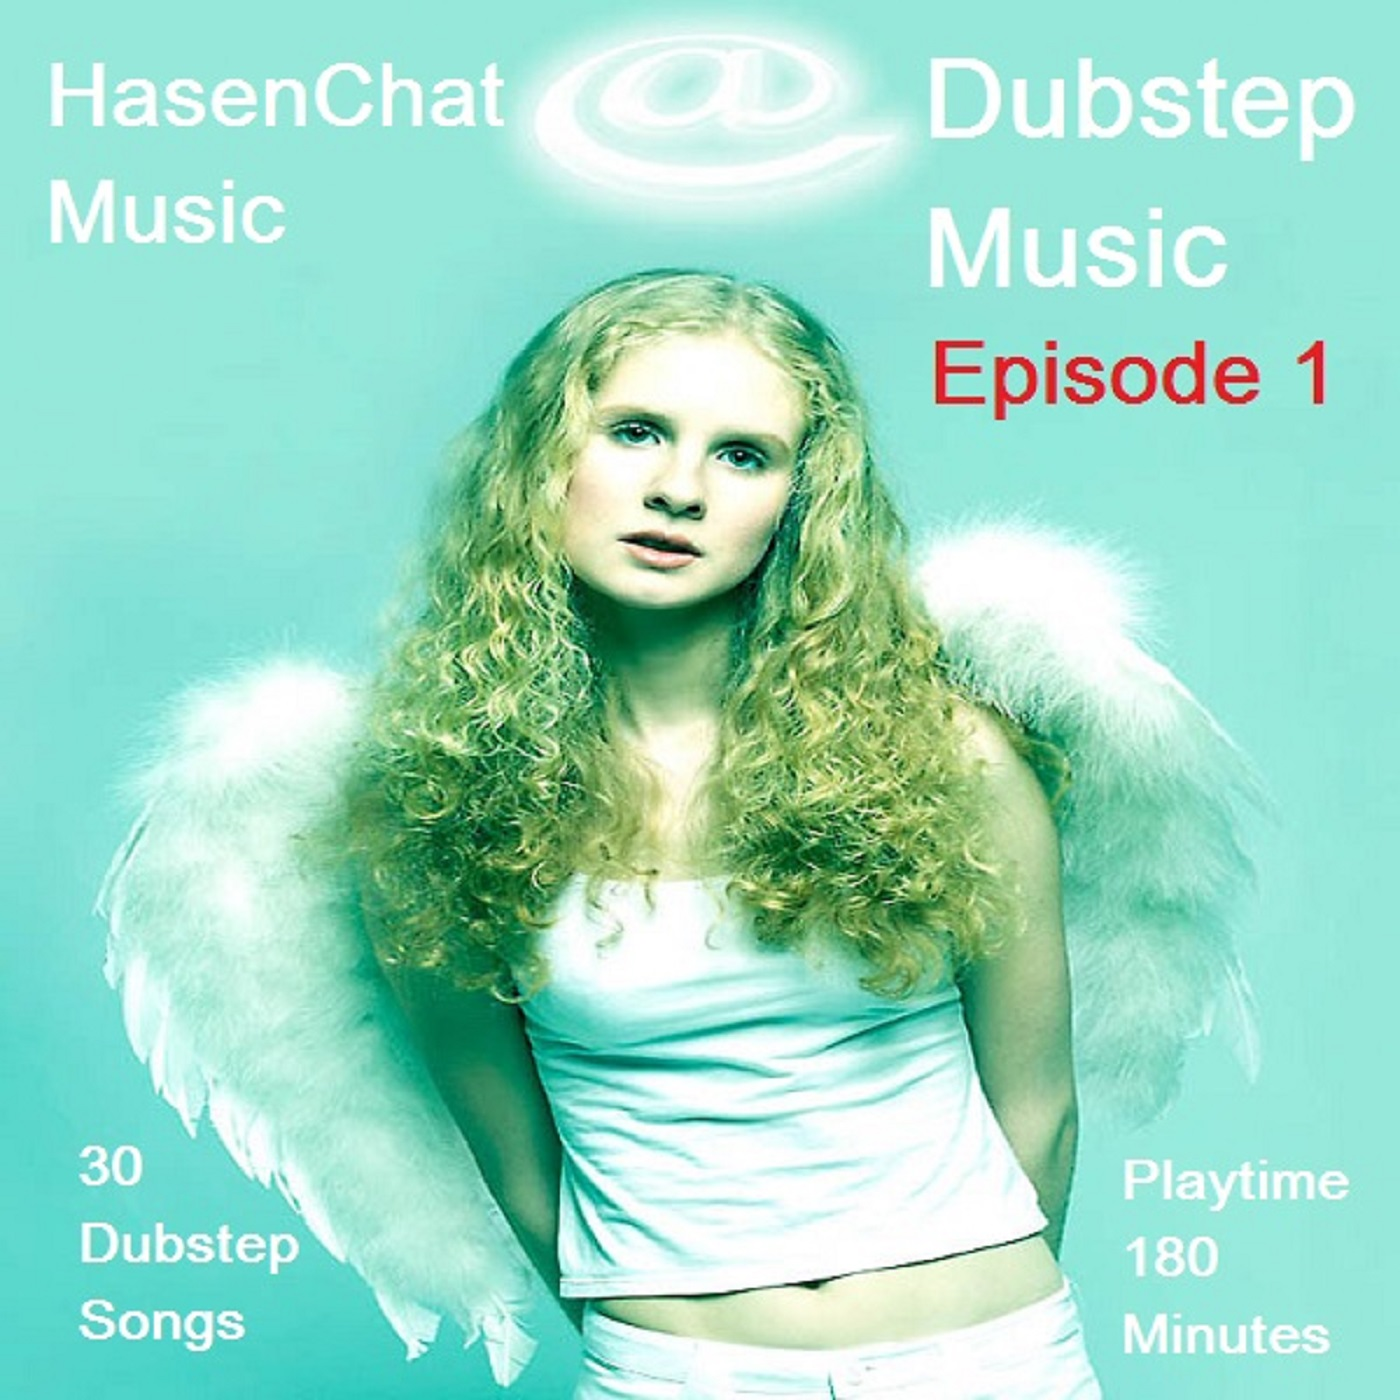 HasenChat Music - Dubstep Music - Episode 1